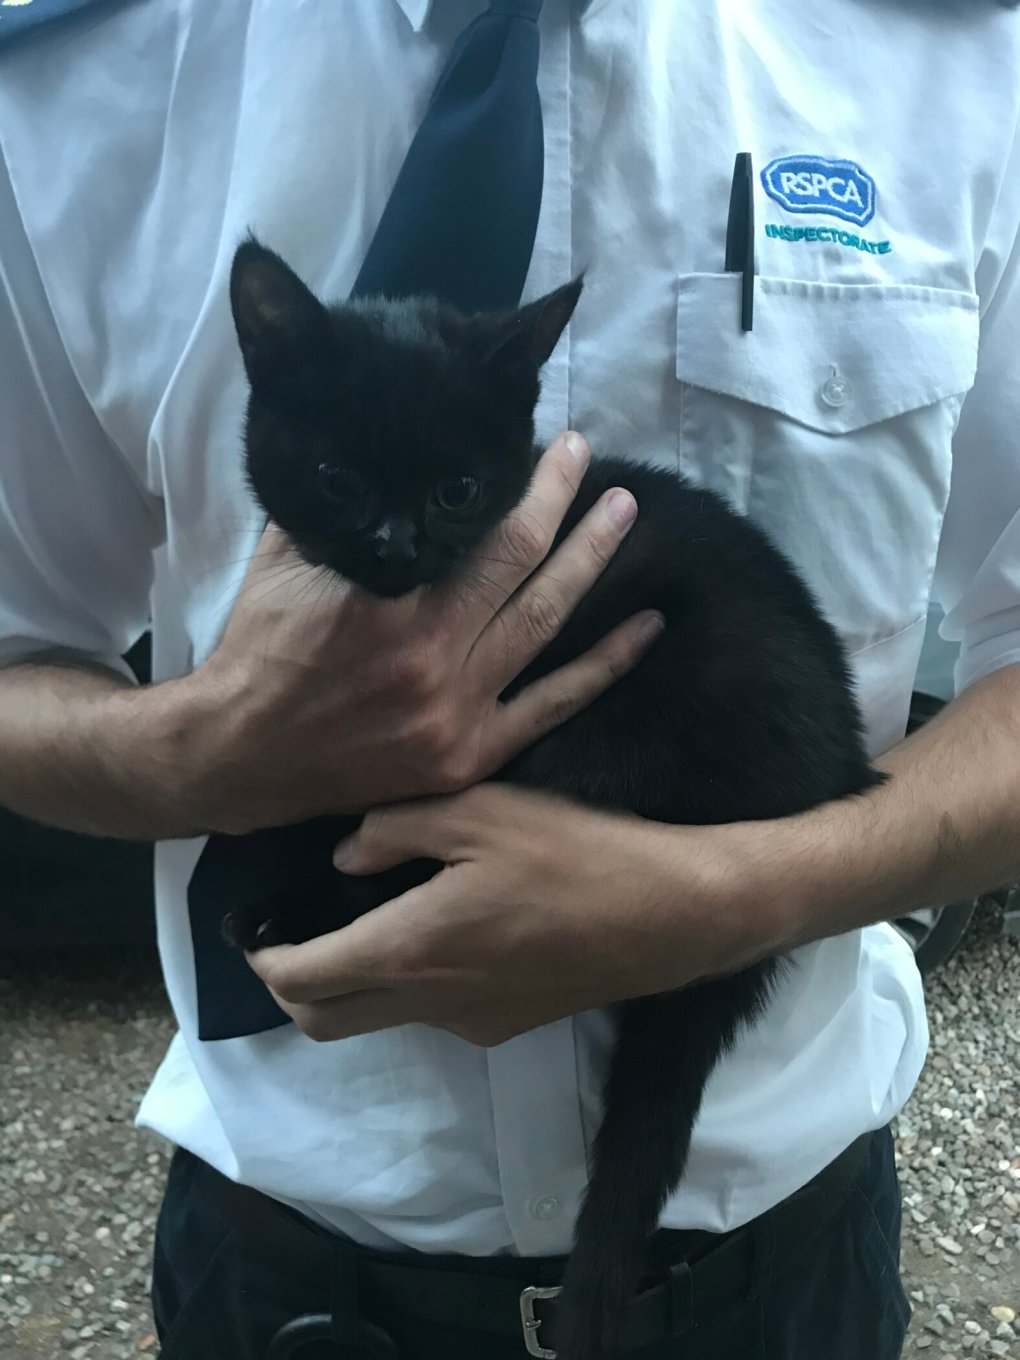 RSPCA Appeals for Information After Kitten With Suspected Concussion is Found Abandoned in Backpack